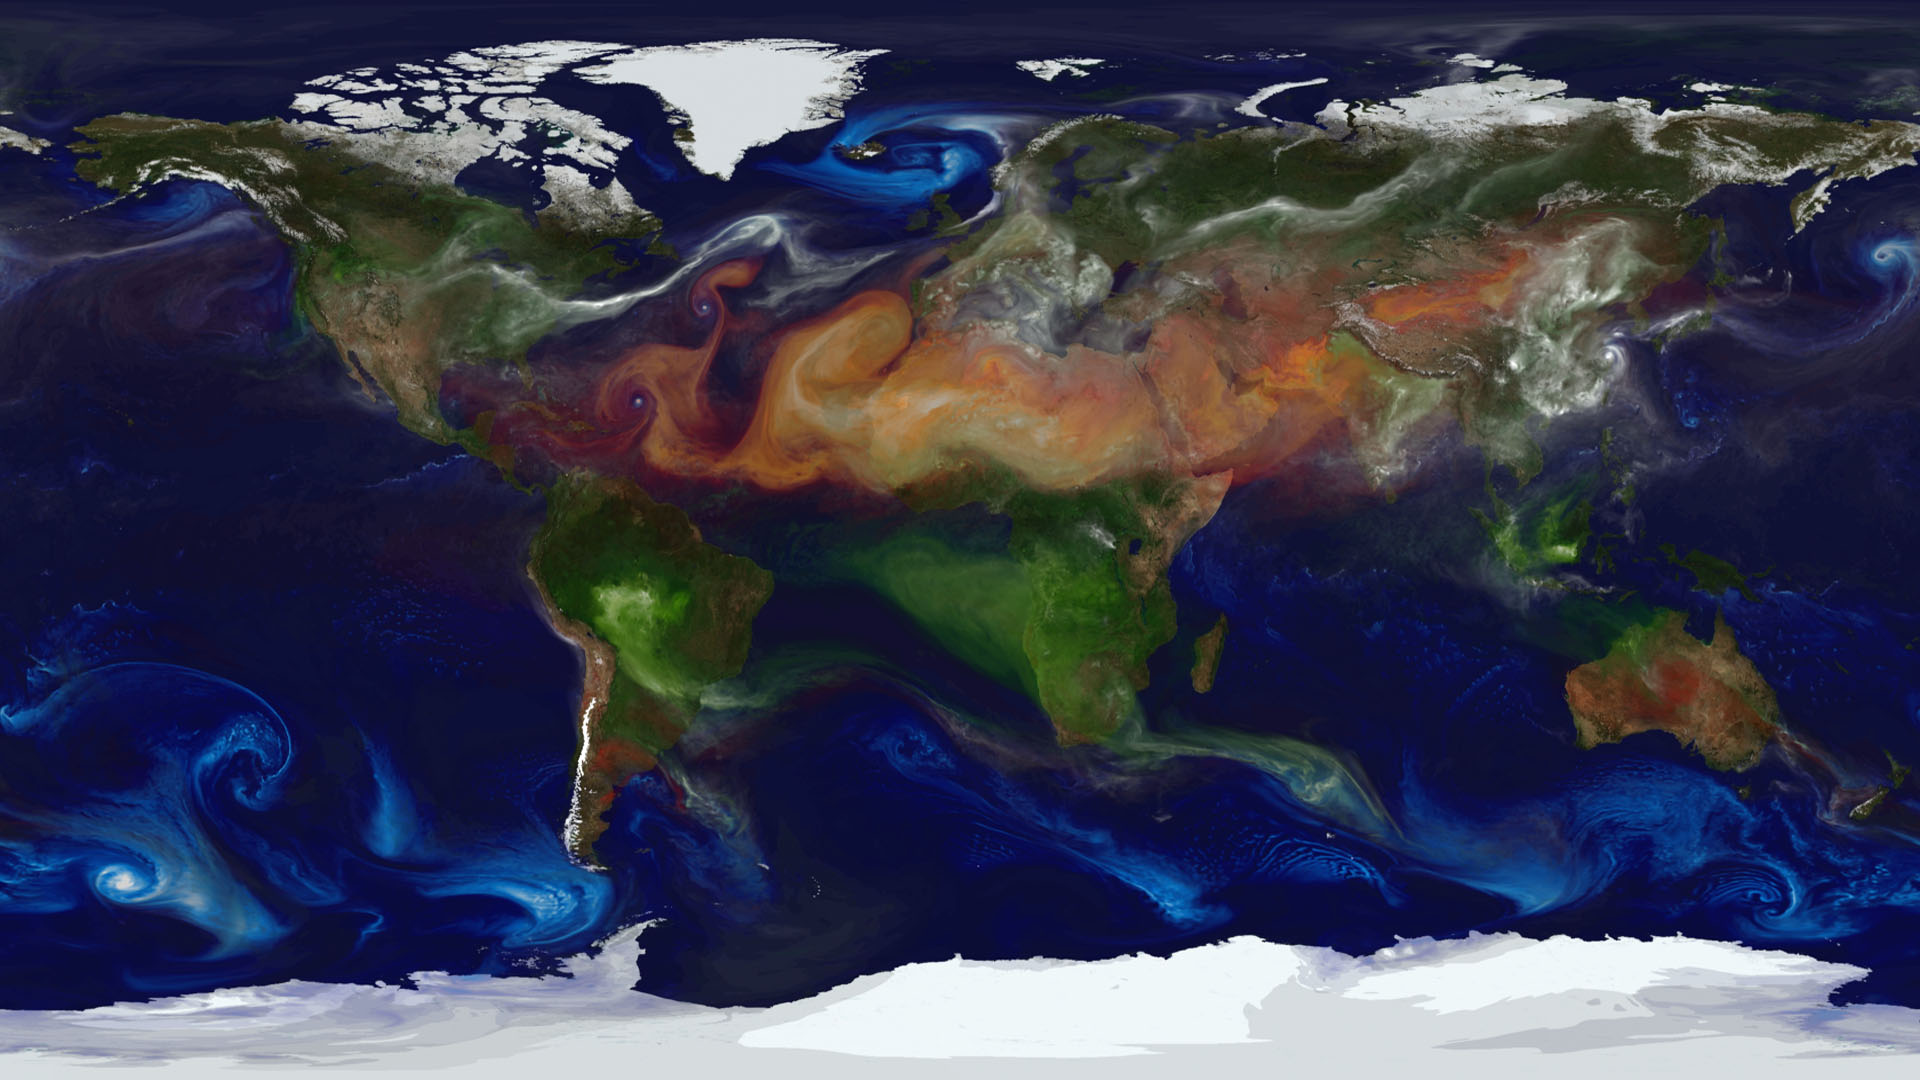 NASA models and supercomputing have created a colorful new view of aerosol movement. Source: https://svs.gsfc.nasa.gov/10977